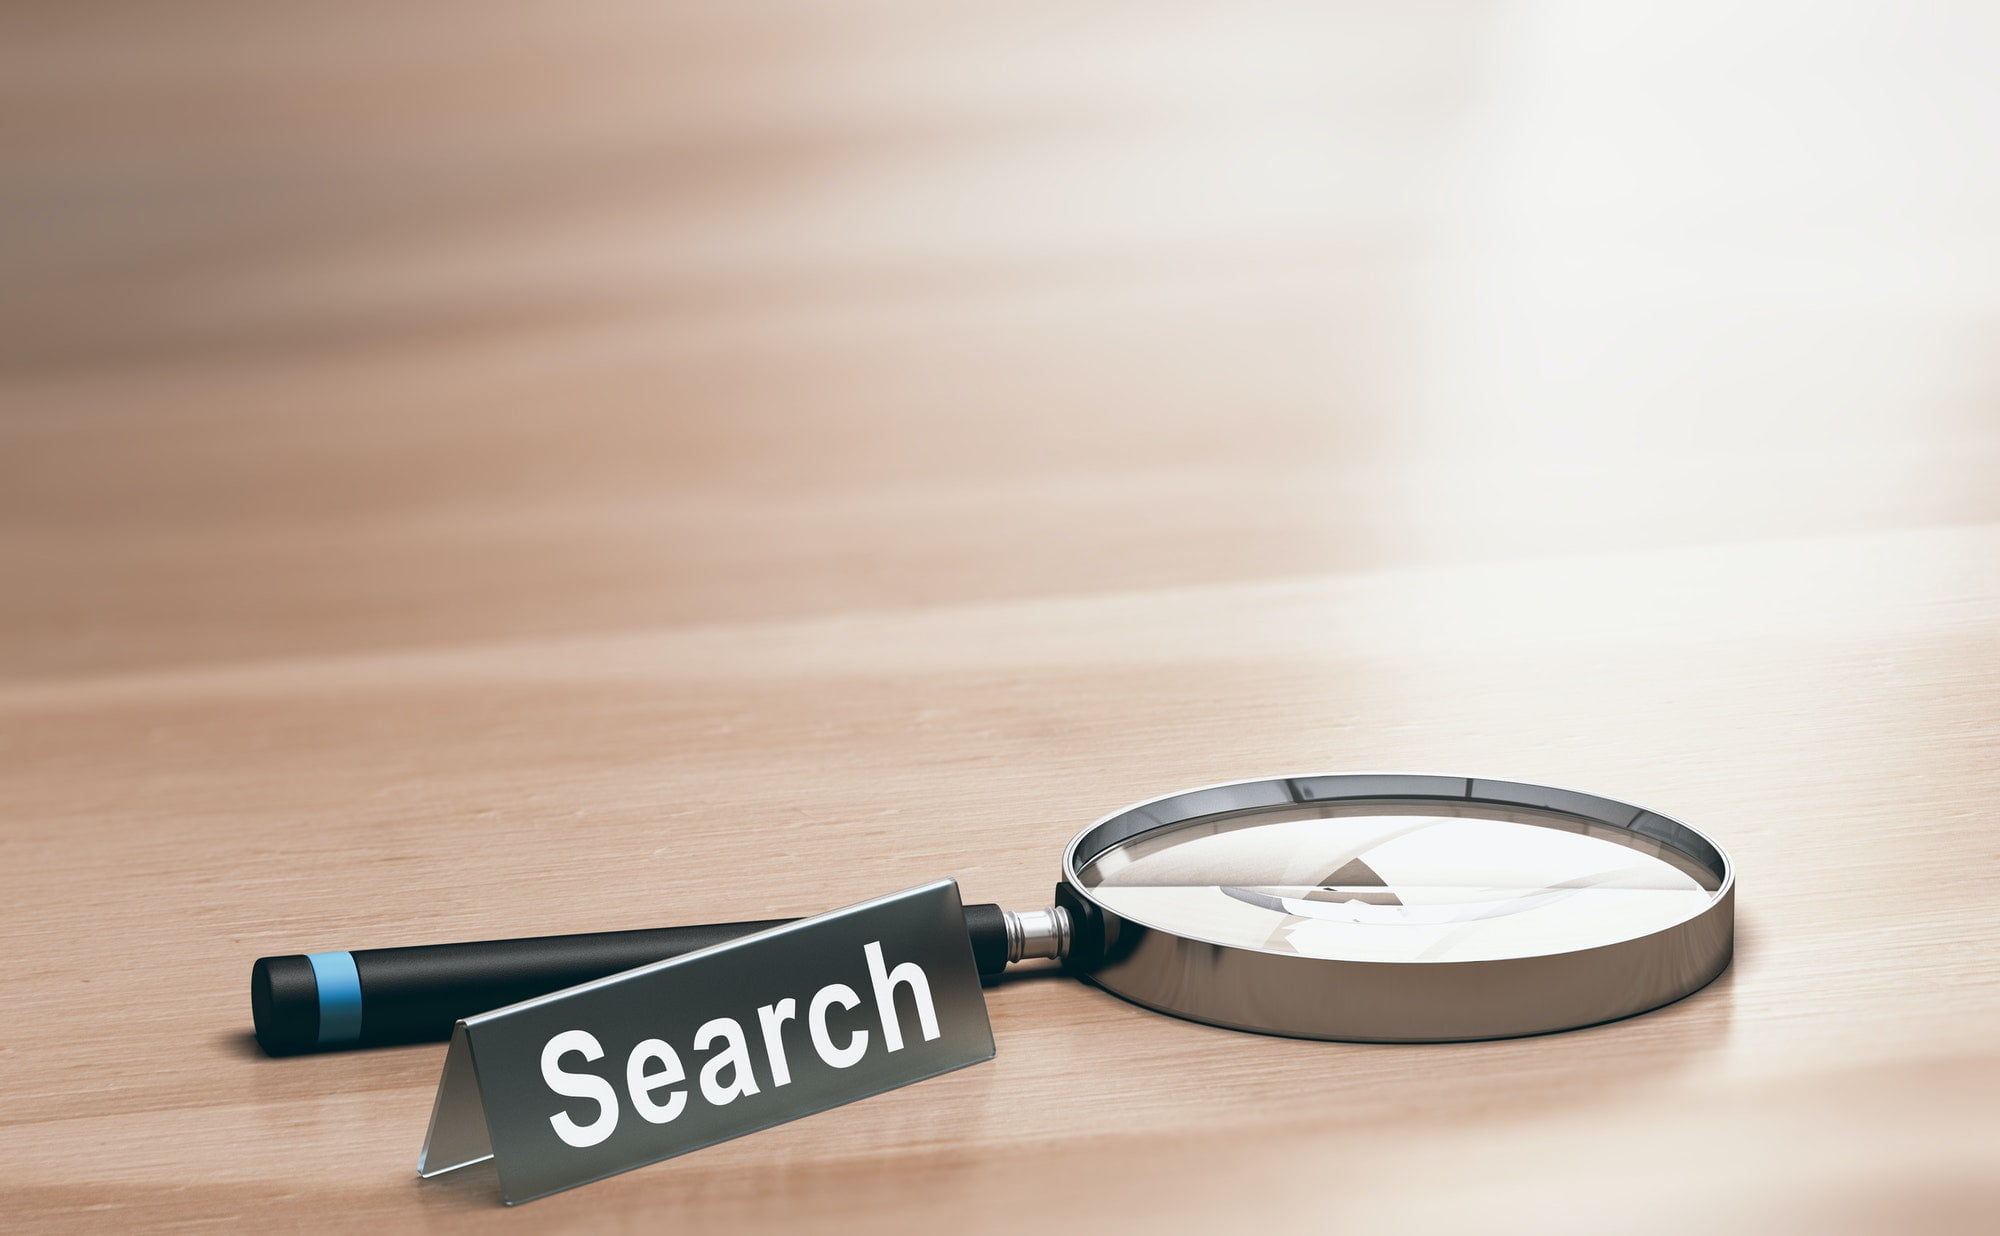 whois Search Tool